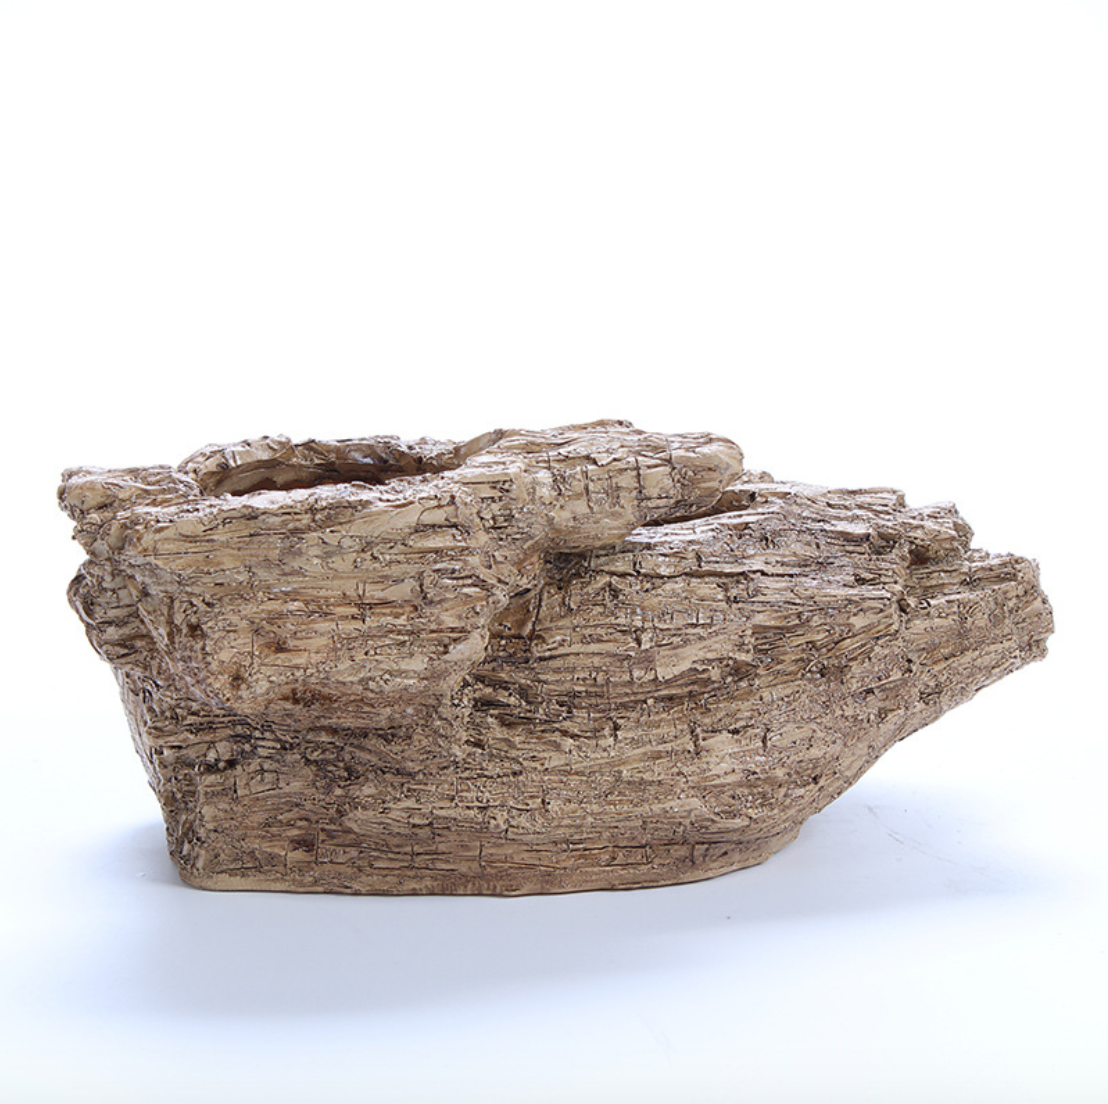 Unique Stump Planter Driftwood Planter Resin Faux Wood Succulent Container Planter Log Pot (T)